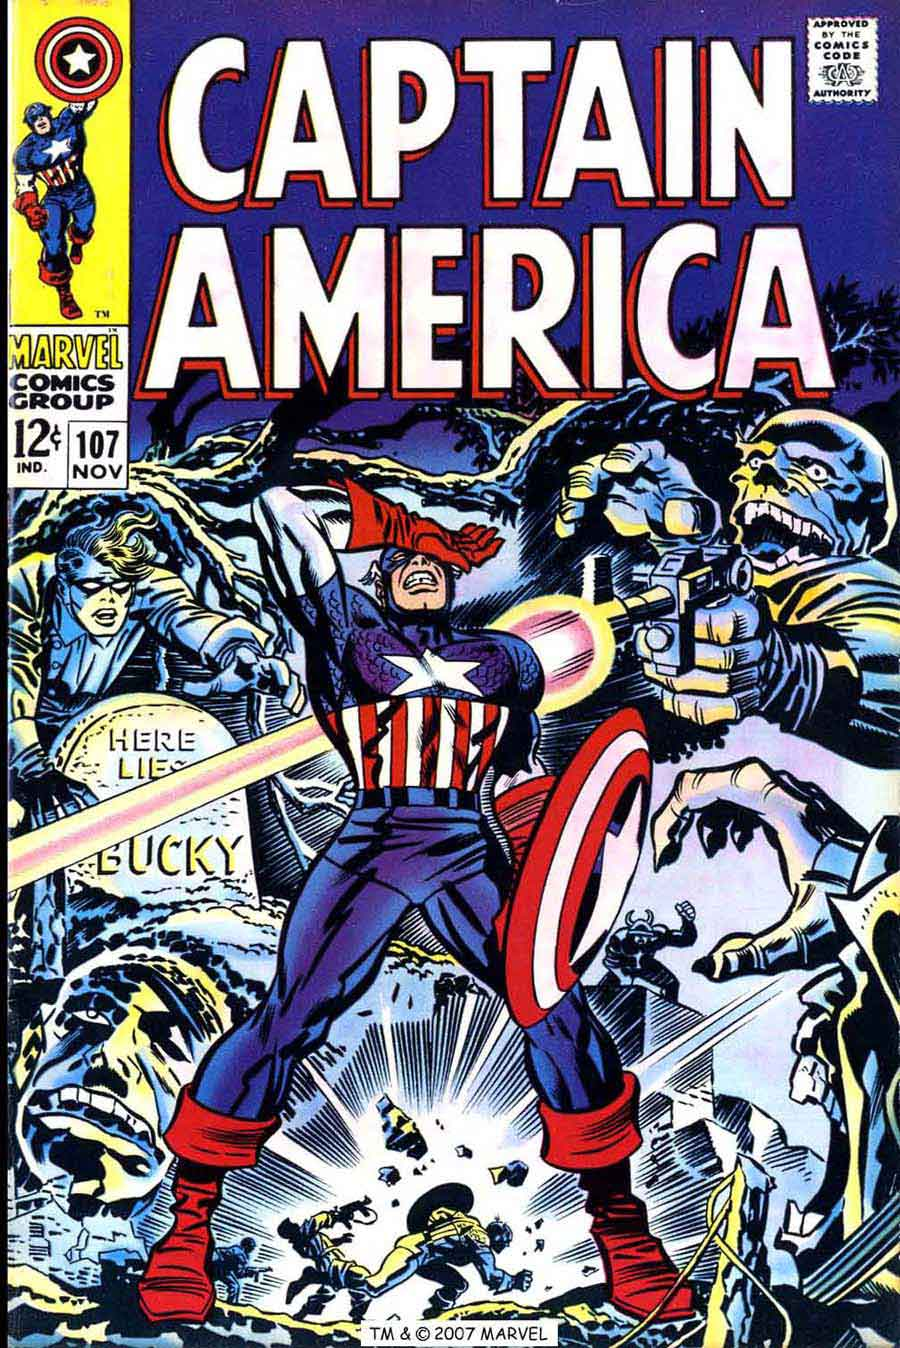 Captain America v1 #107 marvel comic book cover art by Jack Kirby